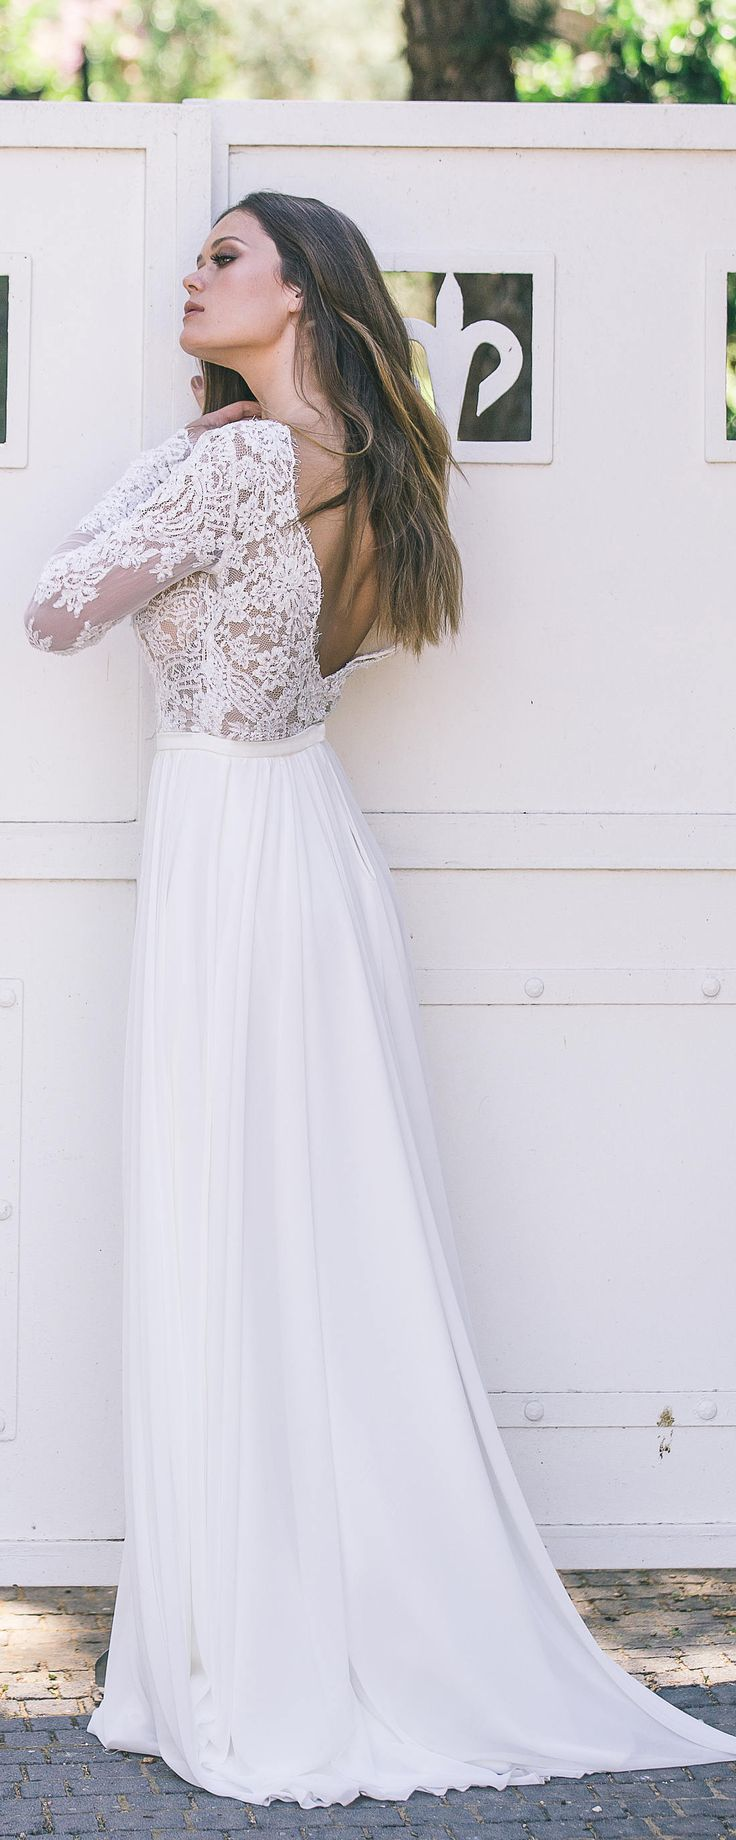 1362 best Weddings images on Pinterest | Backyard wedding dresses ...